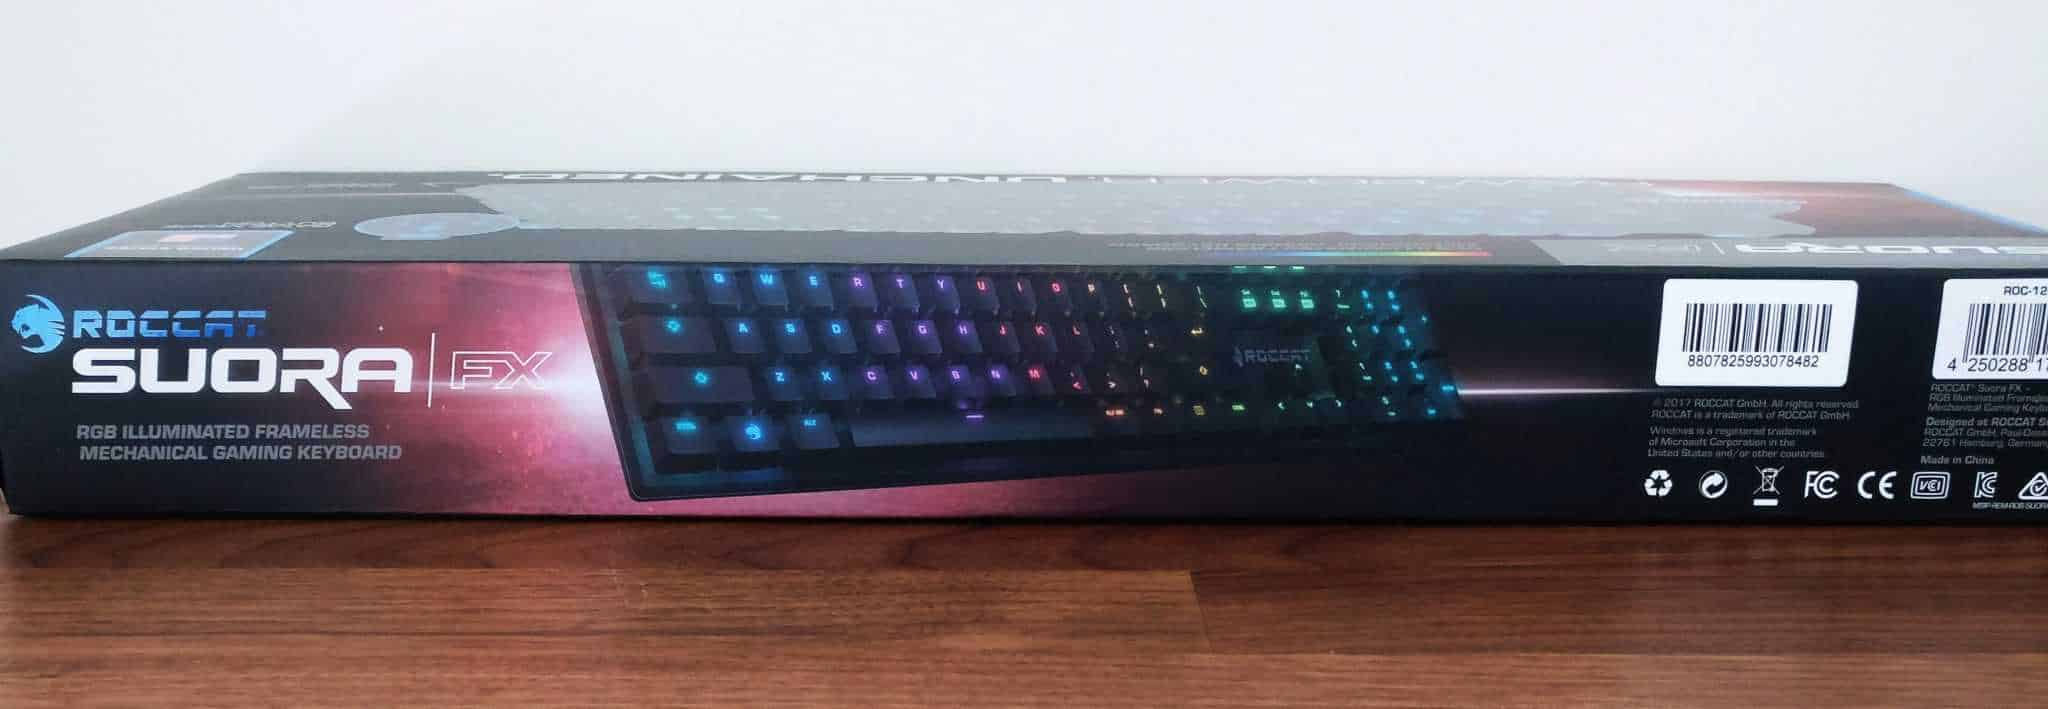 Roccat-suoara-screens-4 Roccat Suora FX RGB Mechanical Gaming Keyboard Review